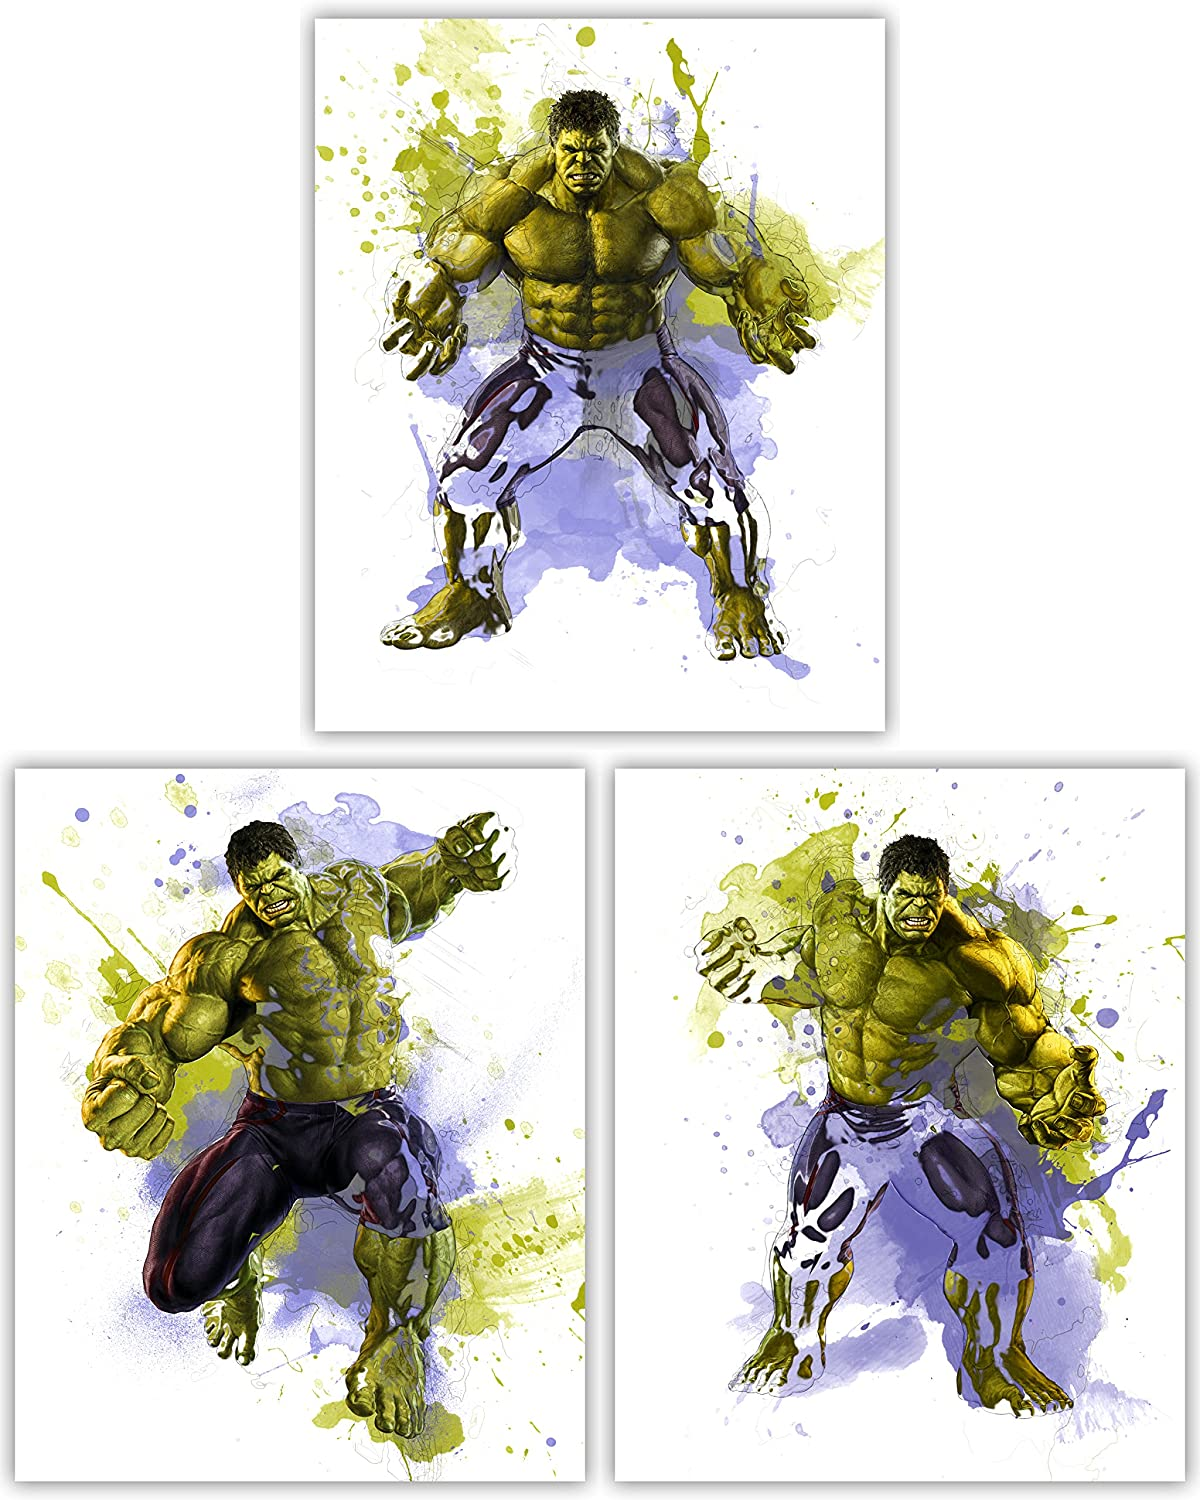 Hulk Wall Decor Collection - The Incredible Avenger in This Awesome Wall Art Movie Poster Collection - Set of 3 8x10 Photos